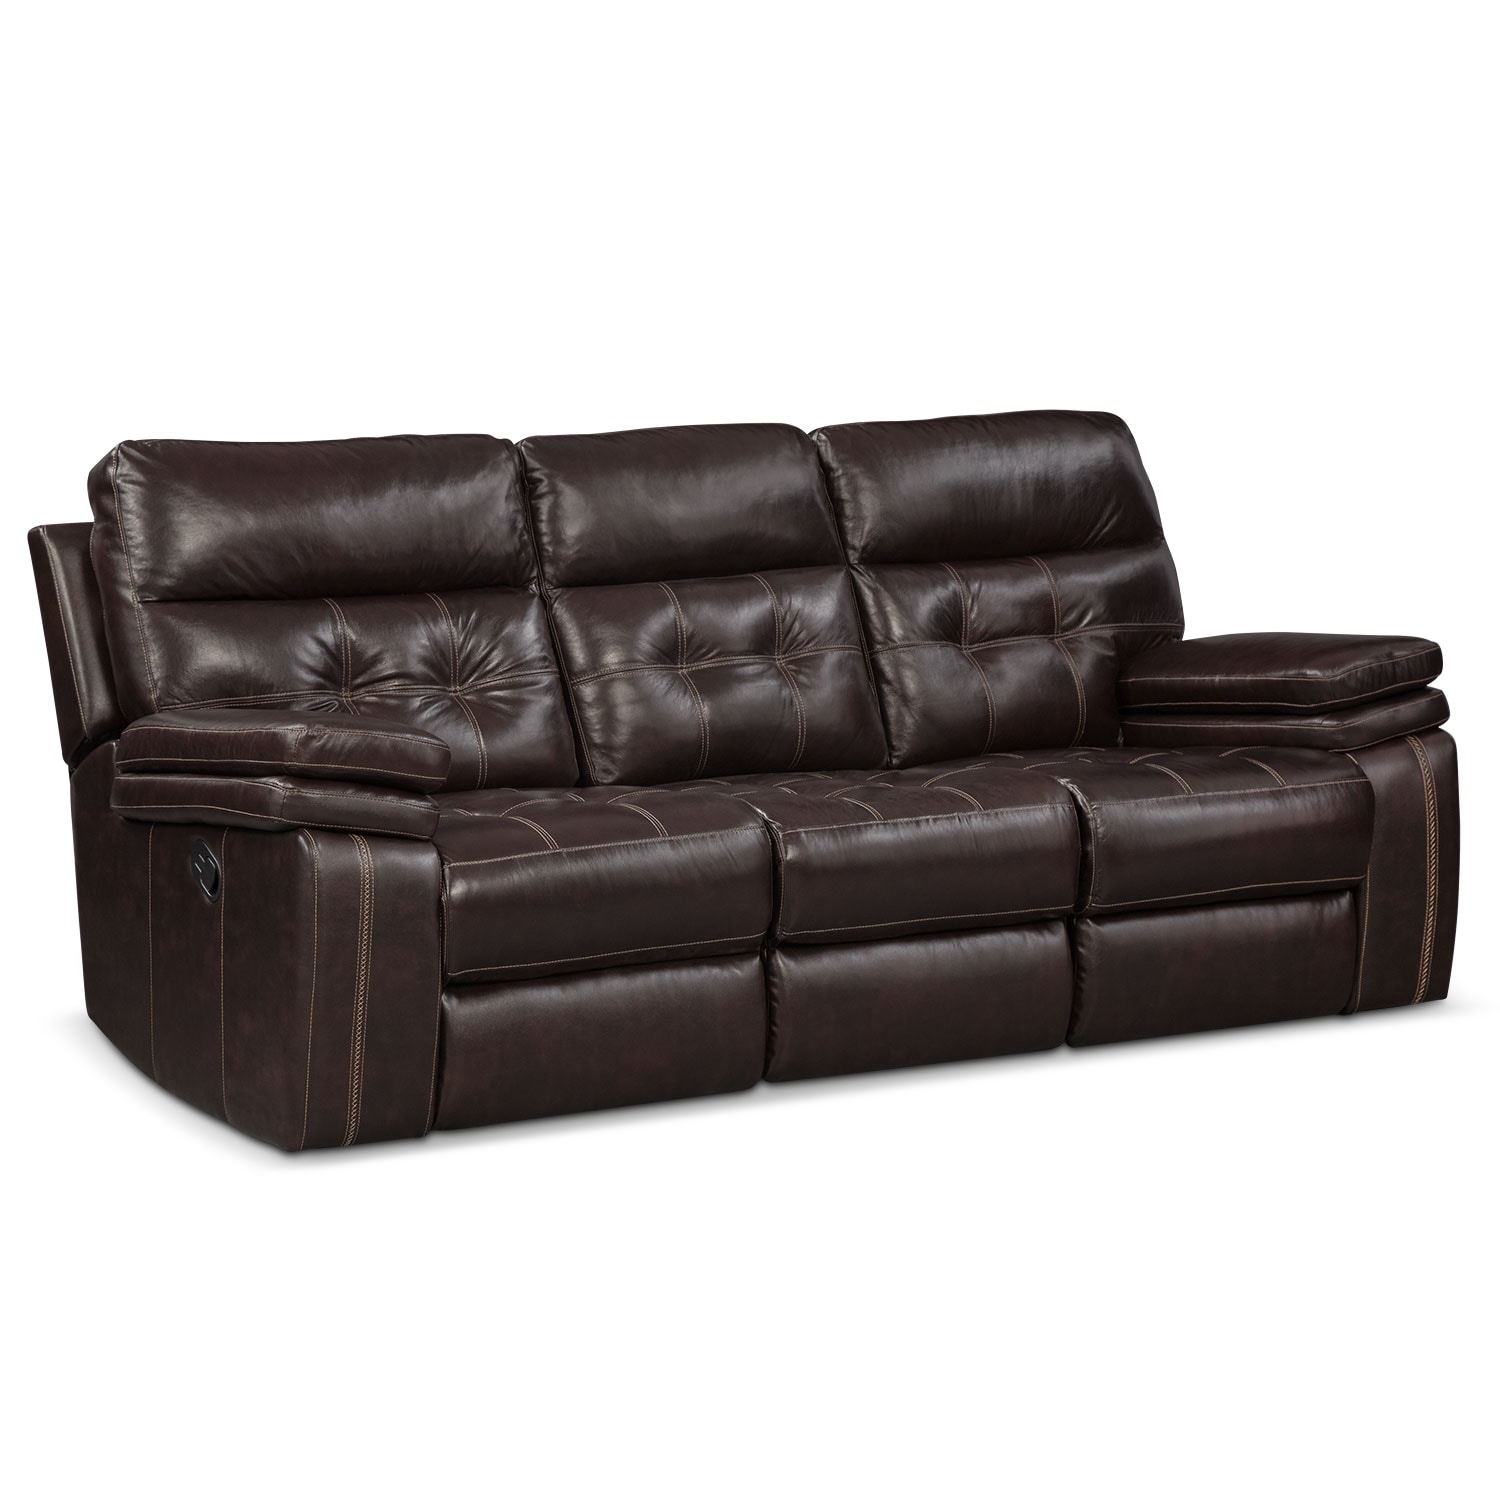 Living Room Furniture - Brisco Manual Reclining Sofa - Brown